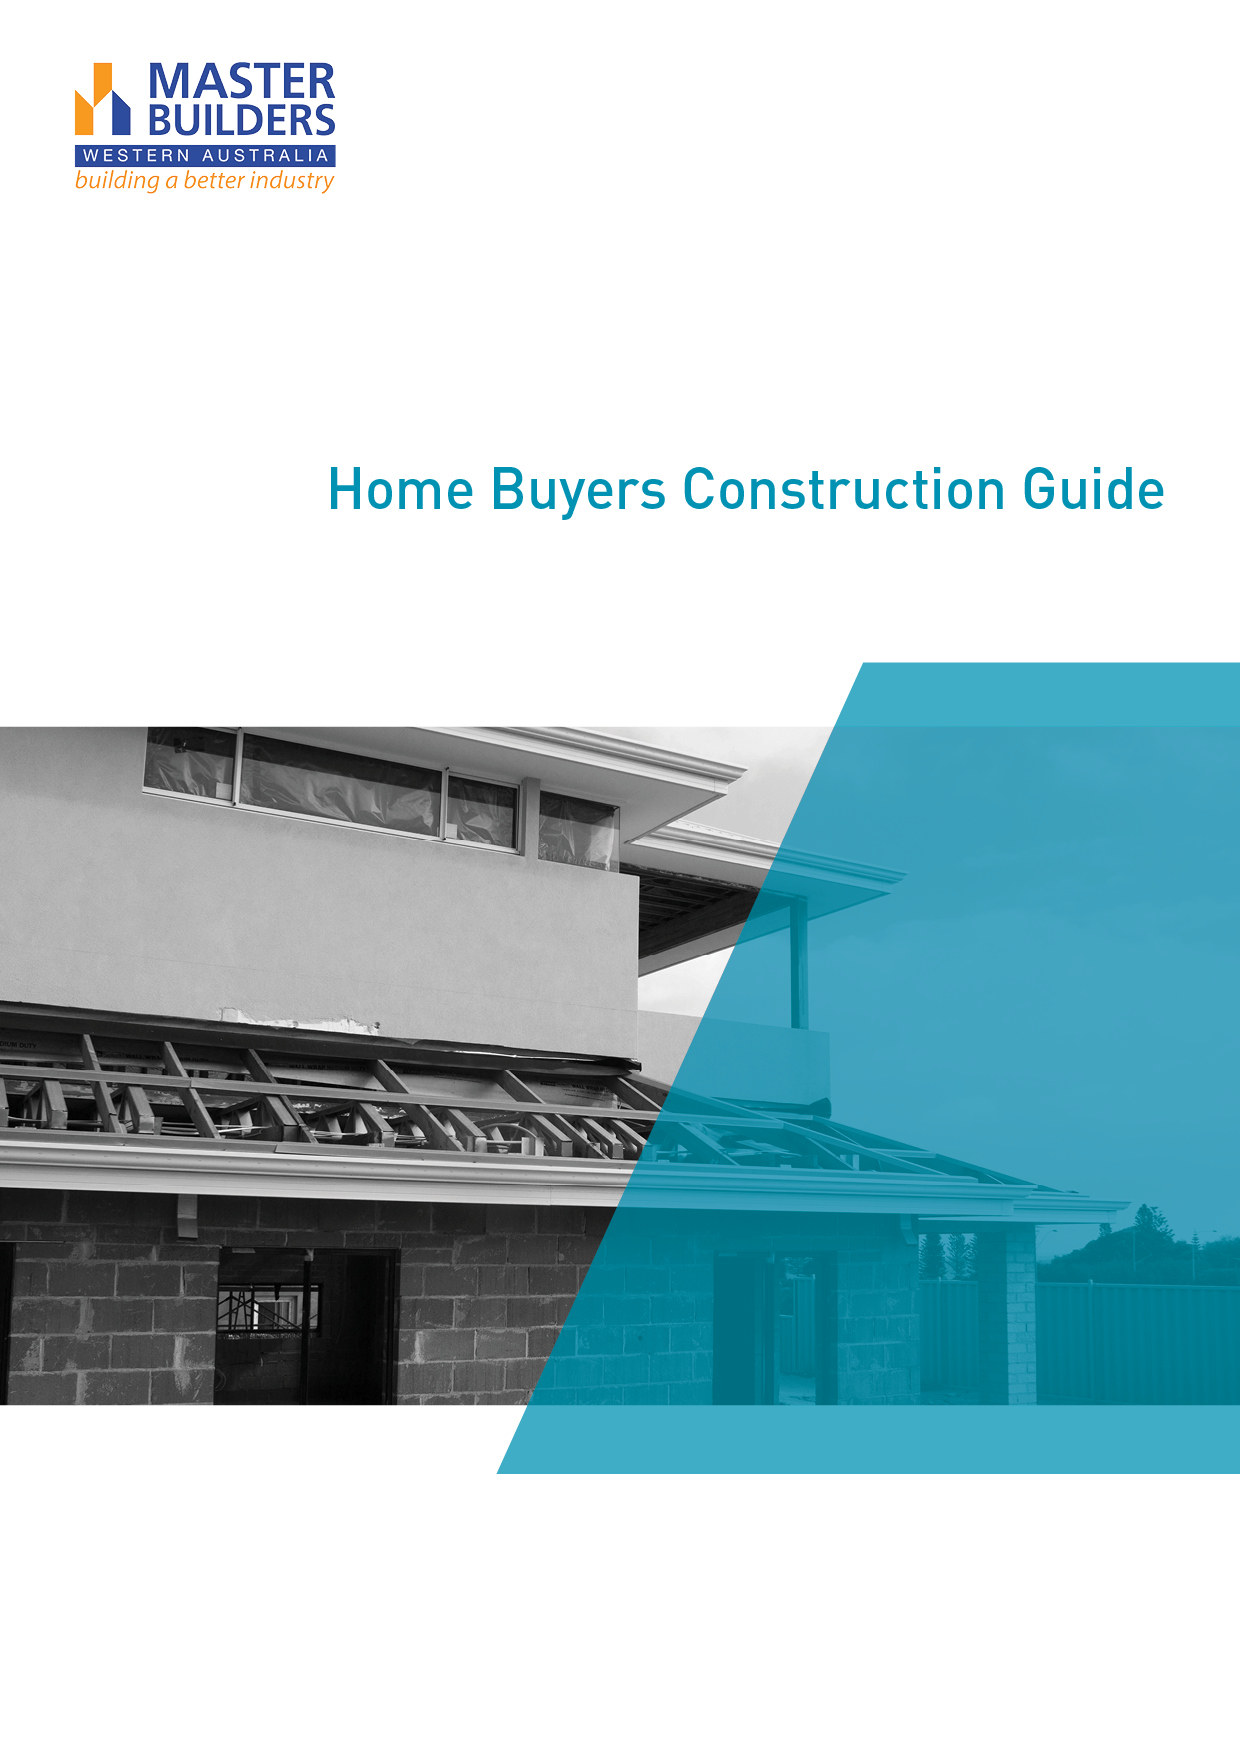 Home buyers construction guide master builders wa for Home building guide